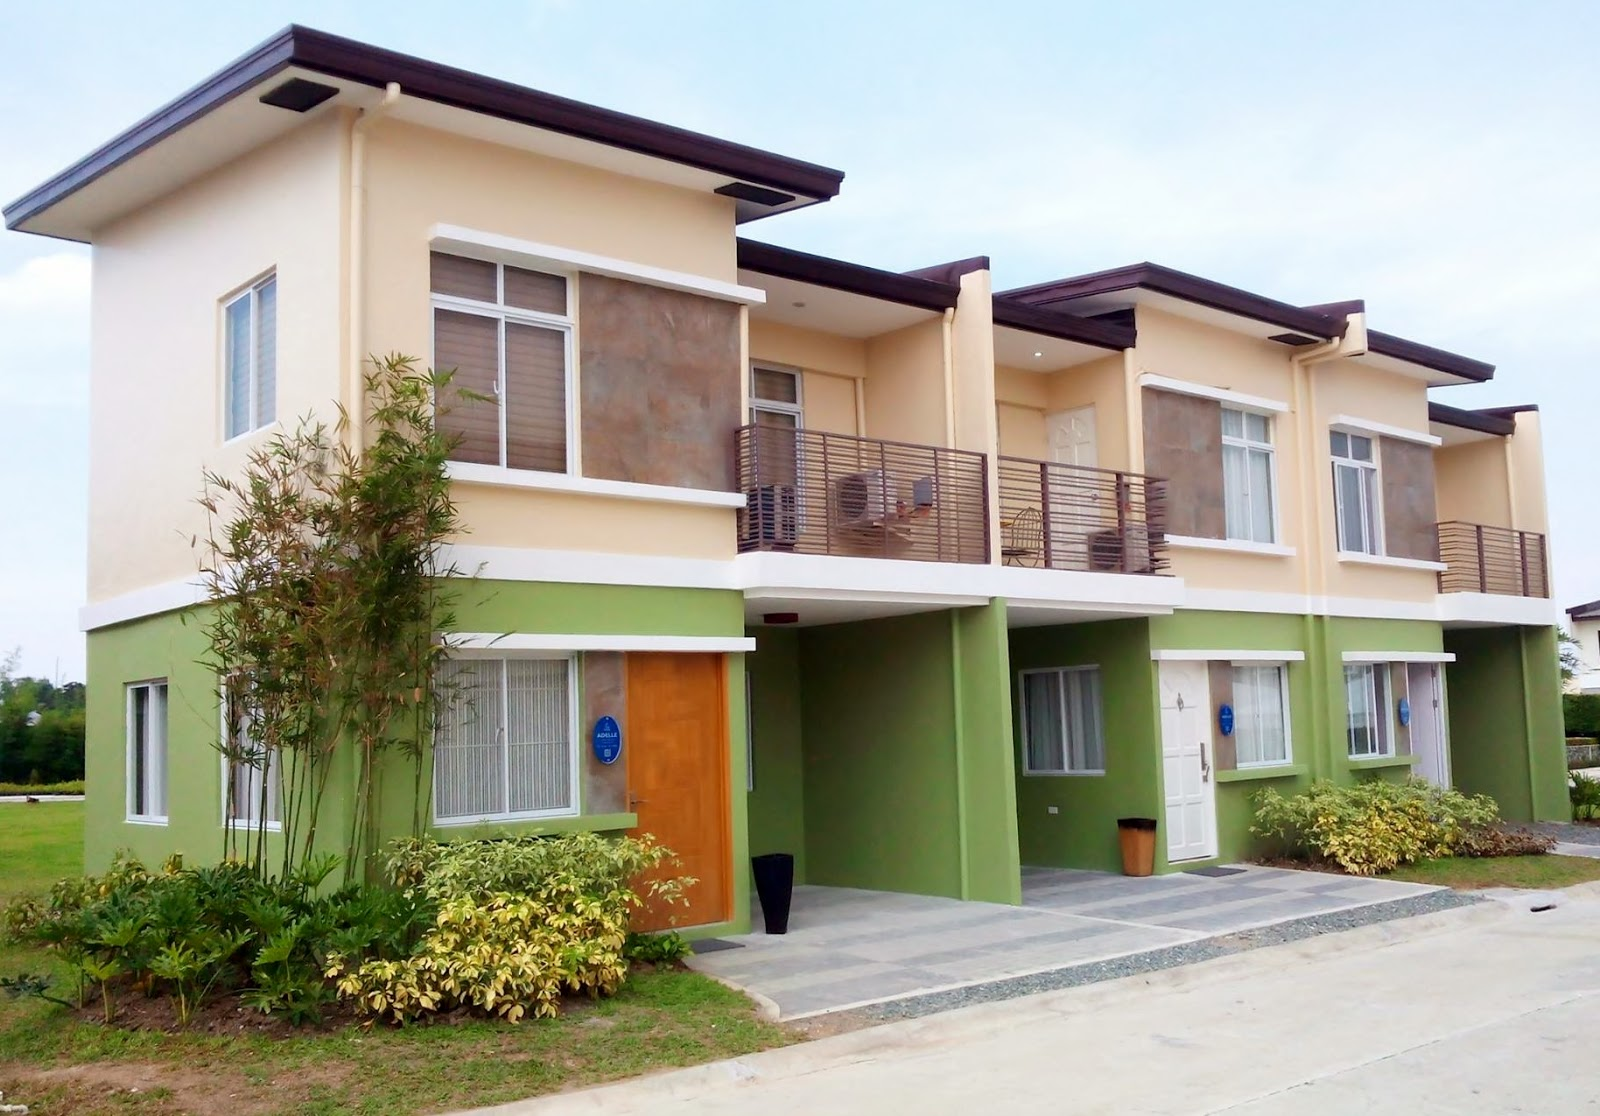 Rent to own houses in cavite lancaster new city diana Latest model houses